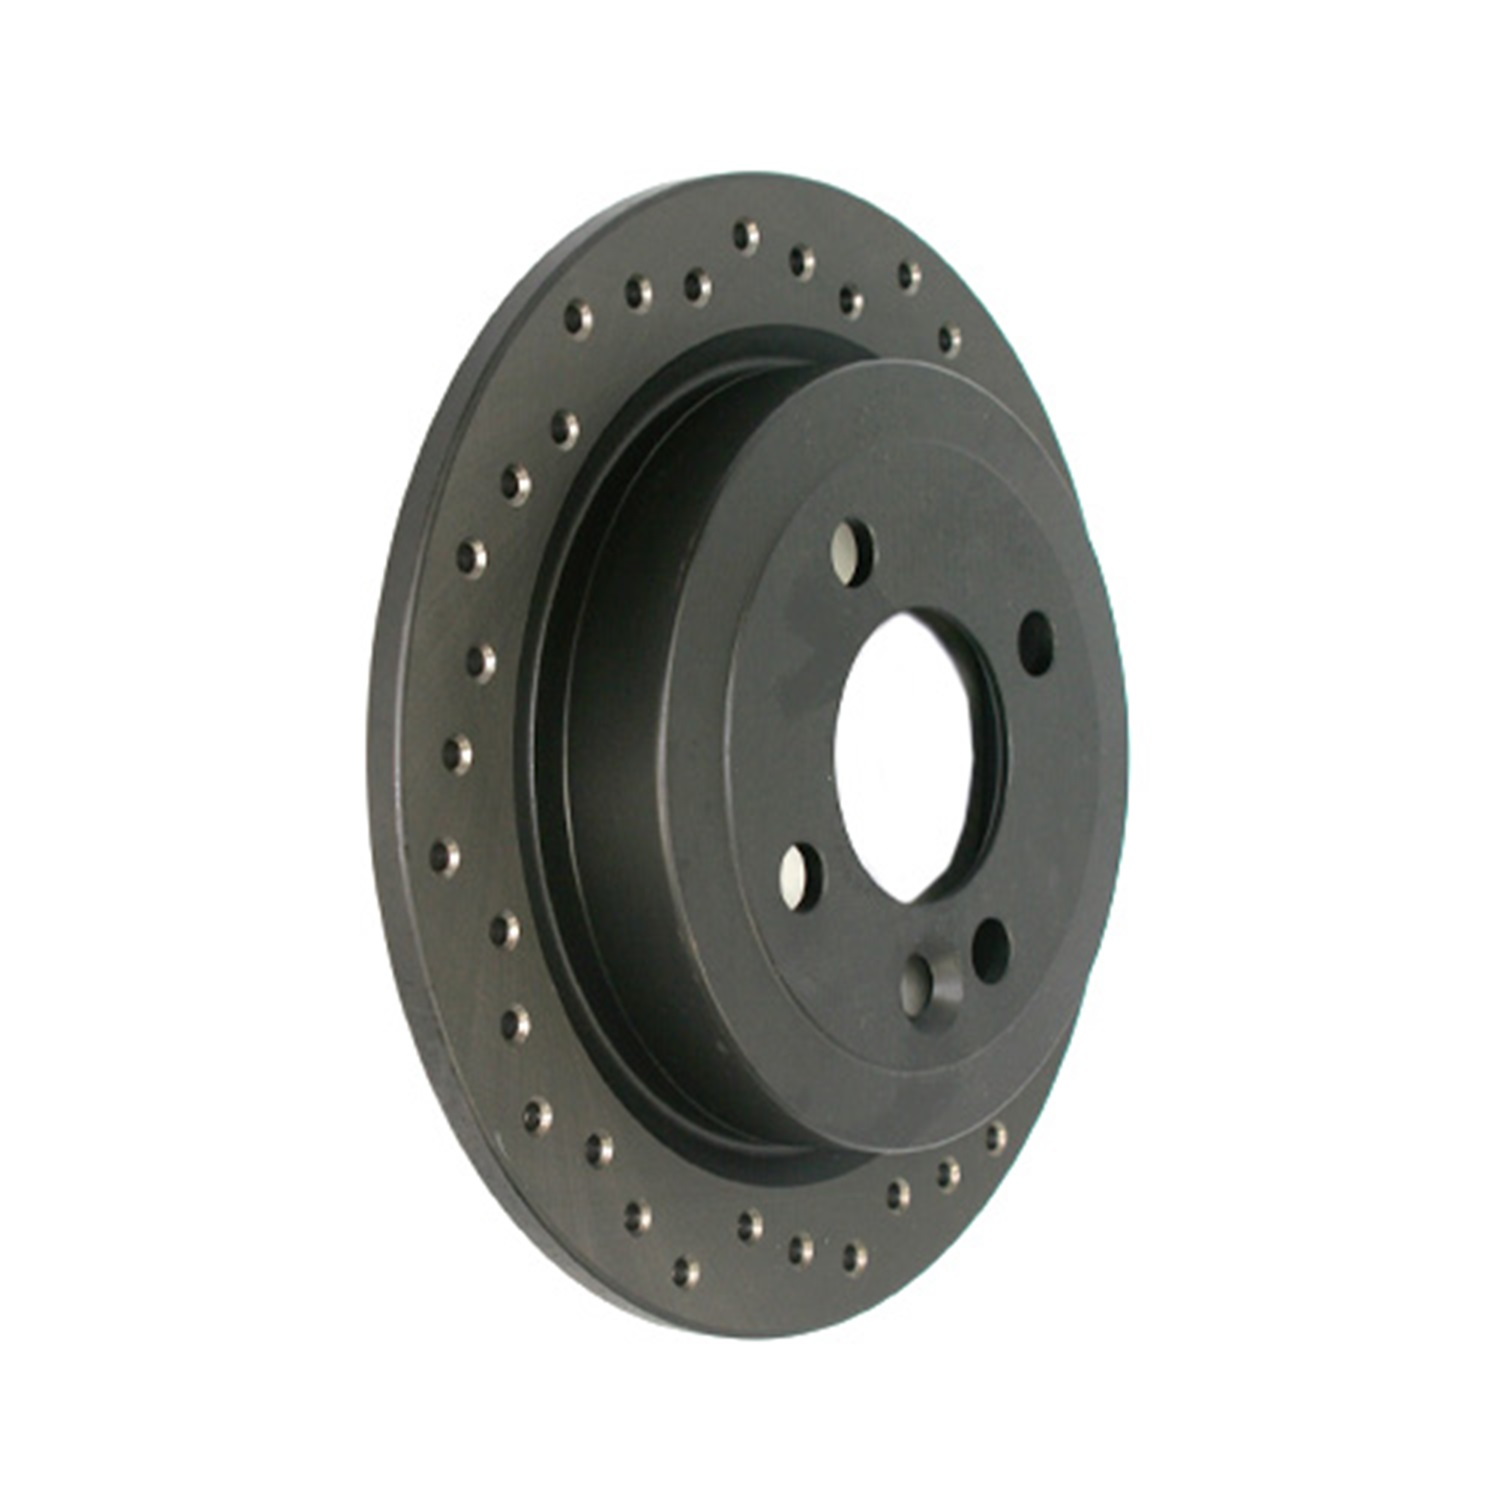 StopTech 128.34066L StopTech Sport Rotors; Drilled; Rear Left;10.20 in. Dia.; 1.73 in. Height;